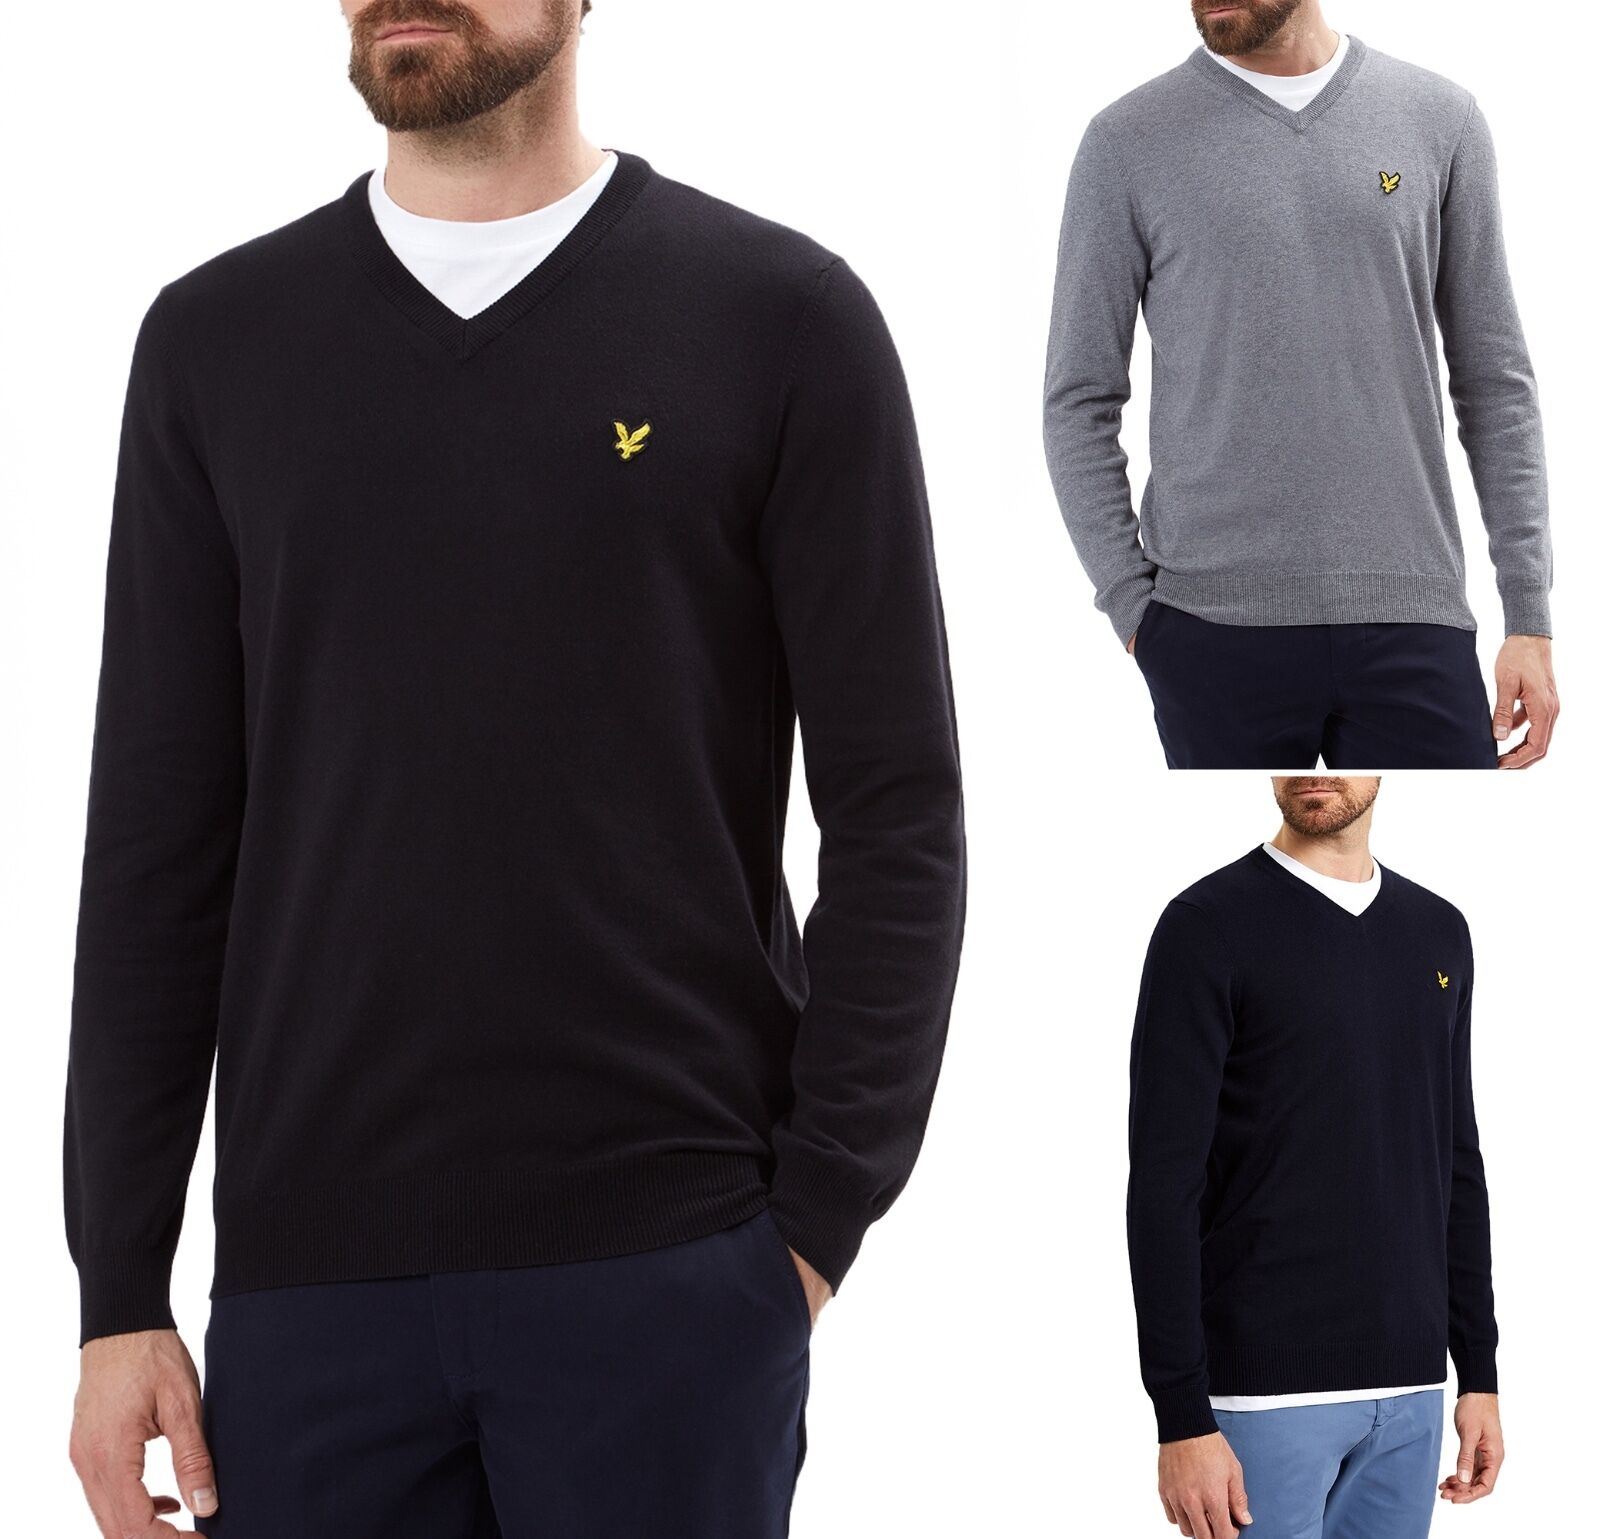 Lyle & Scott New Mens Regular Fit Cotton Merino Wool Blend V-Neck Jumper Sweater